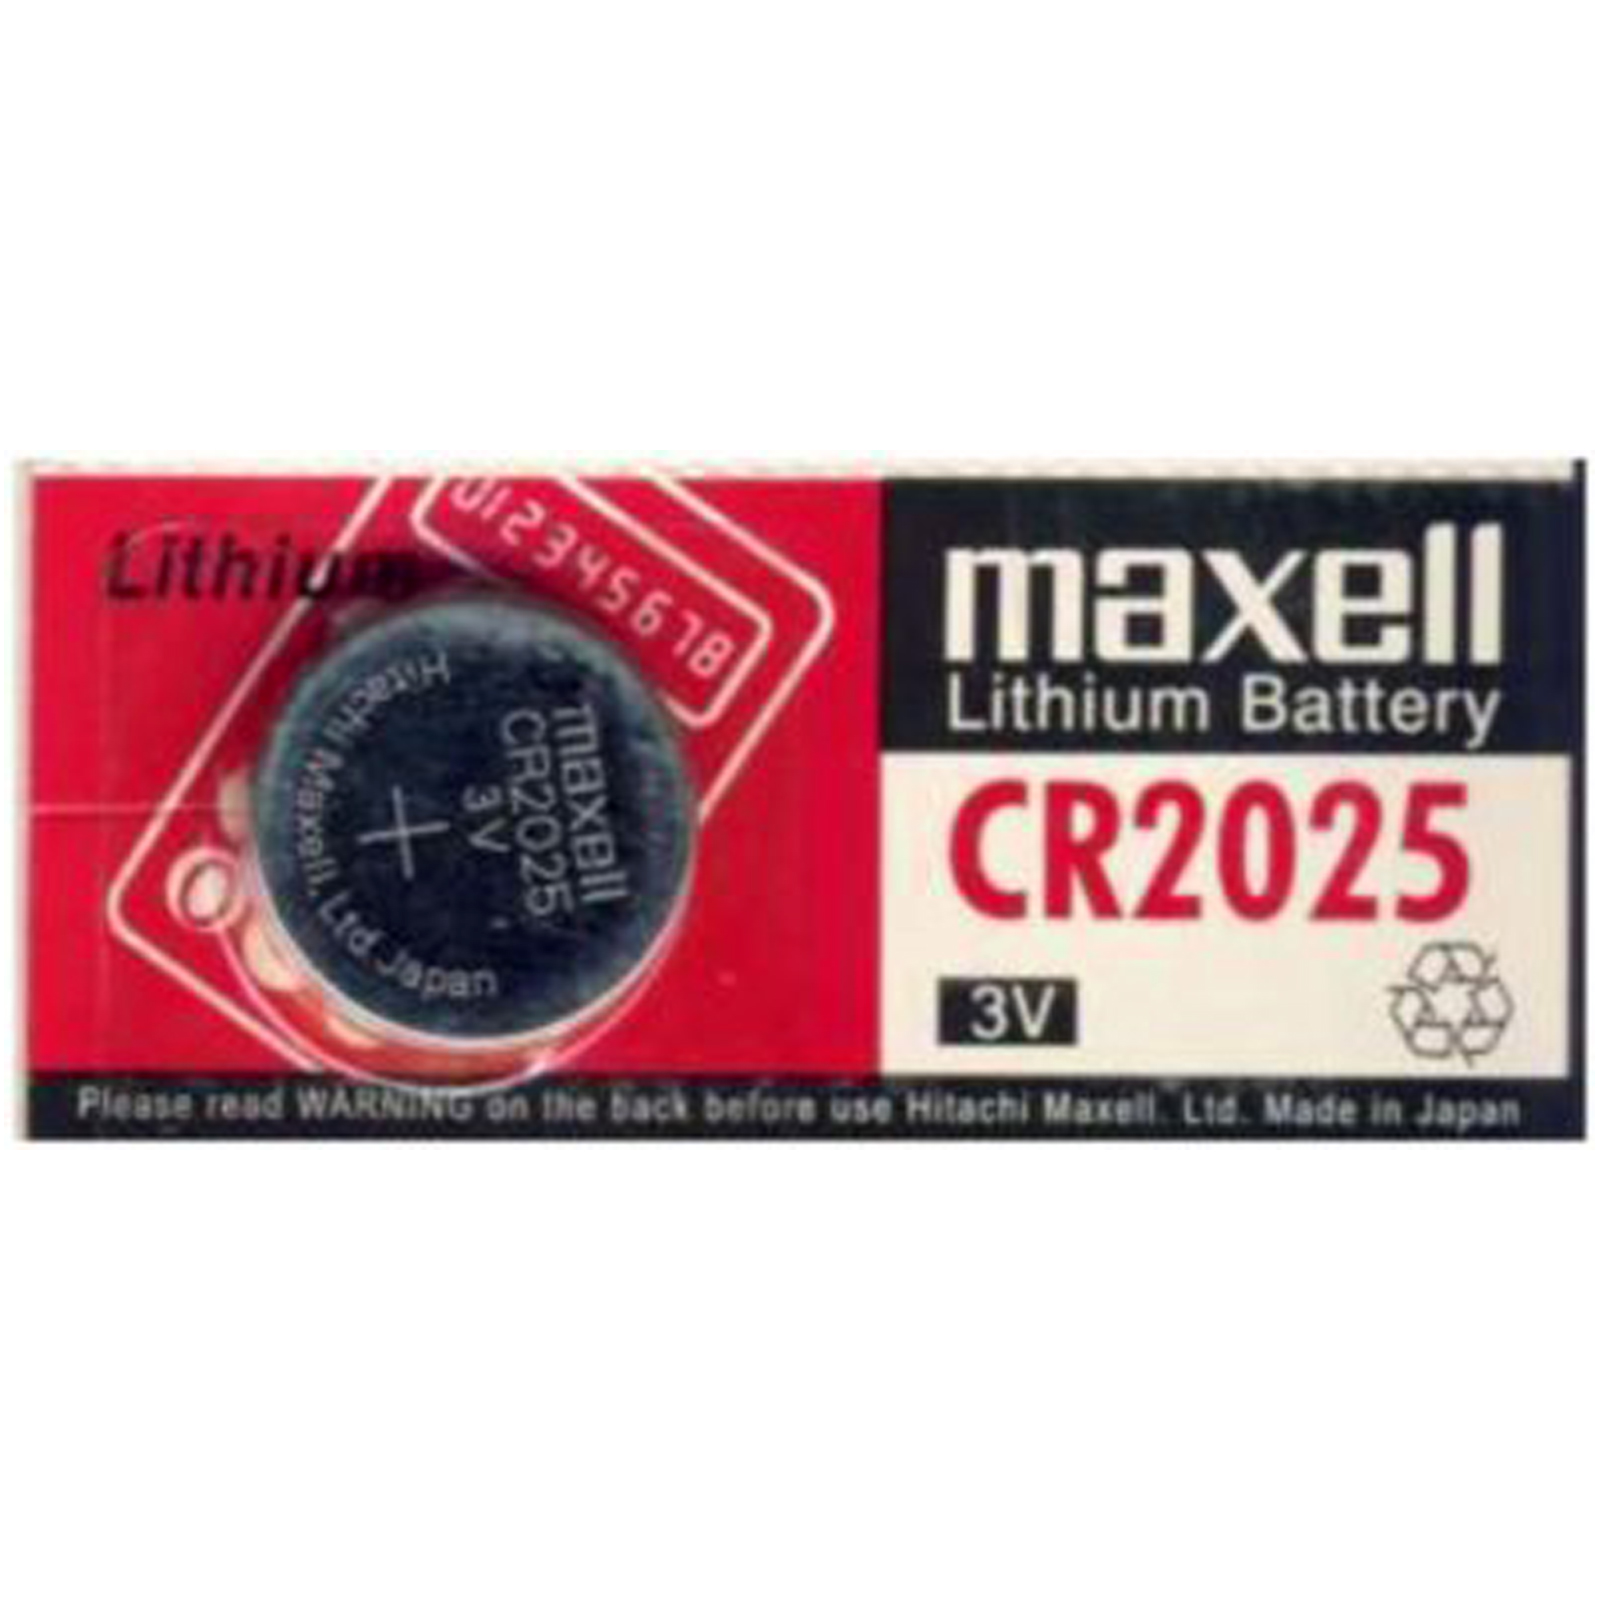 Cr2025 Battery Deals On 1001 Blocks